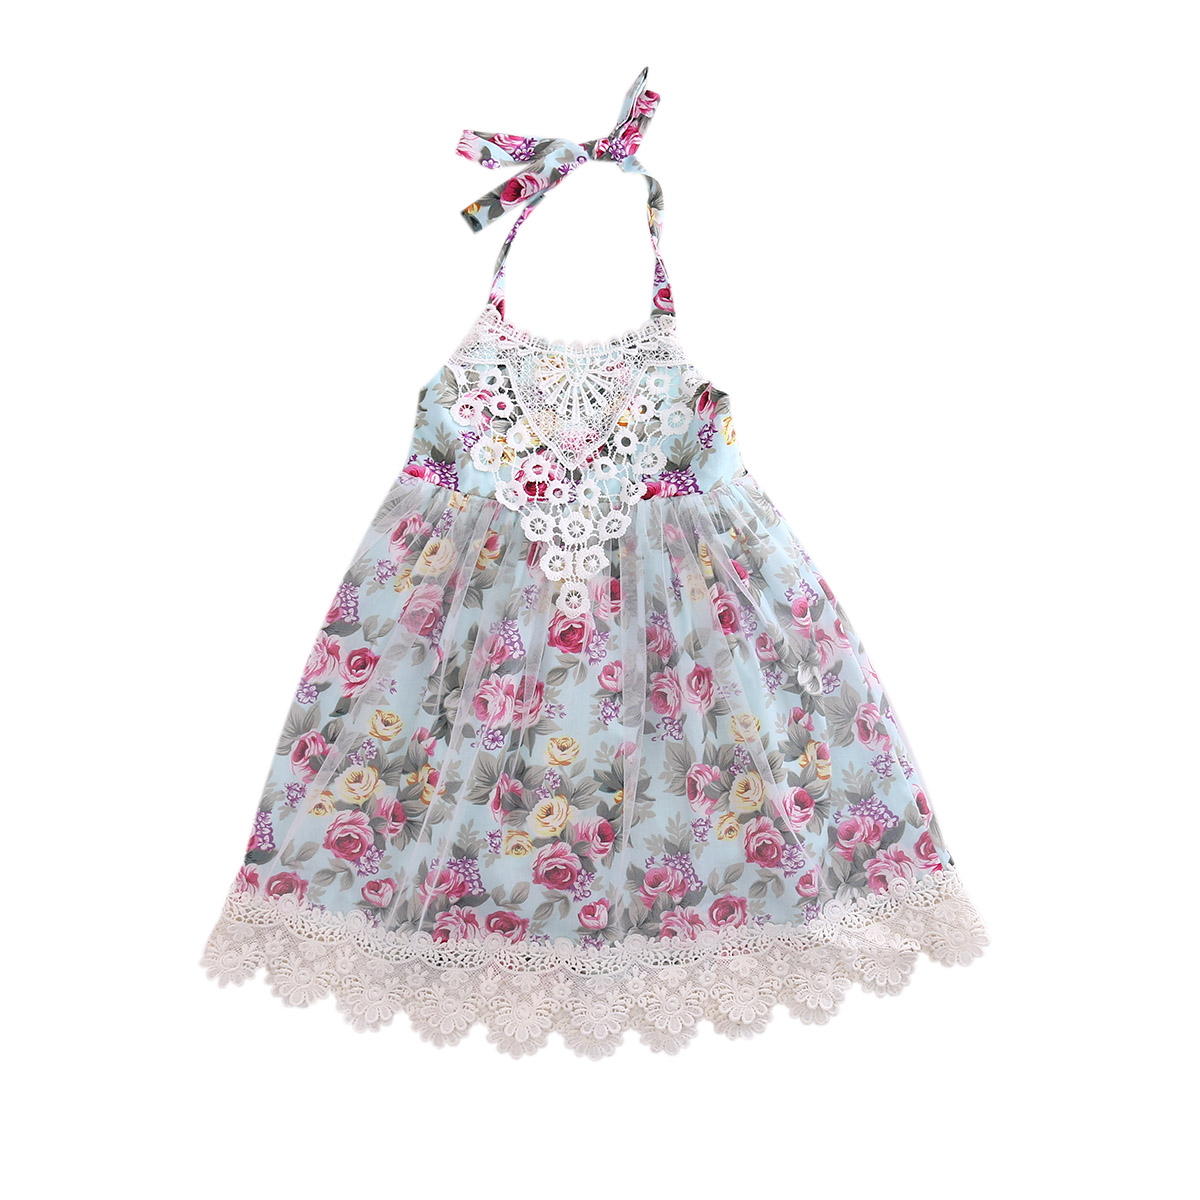 Toddler Kids Baby Girls Lace Floral Dress 2017 Summer Tulle Party Dresses Summer Sundress Children Clothes ems dhl free 2017 new lace tulle baby girls kids sleeveless party dress holiday children summer style baby dress valentine